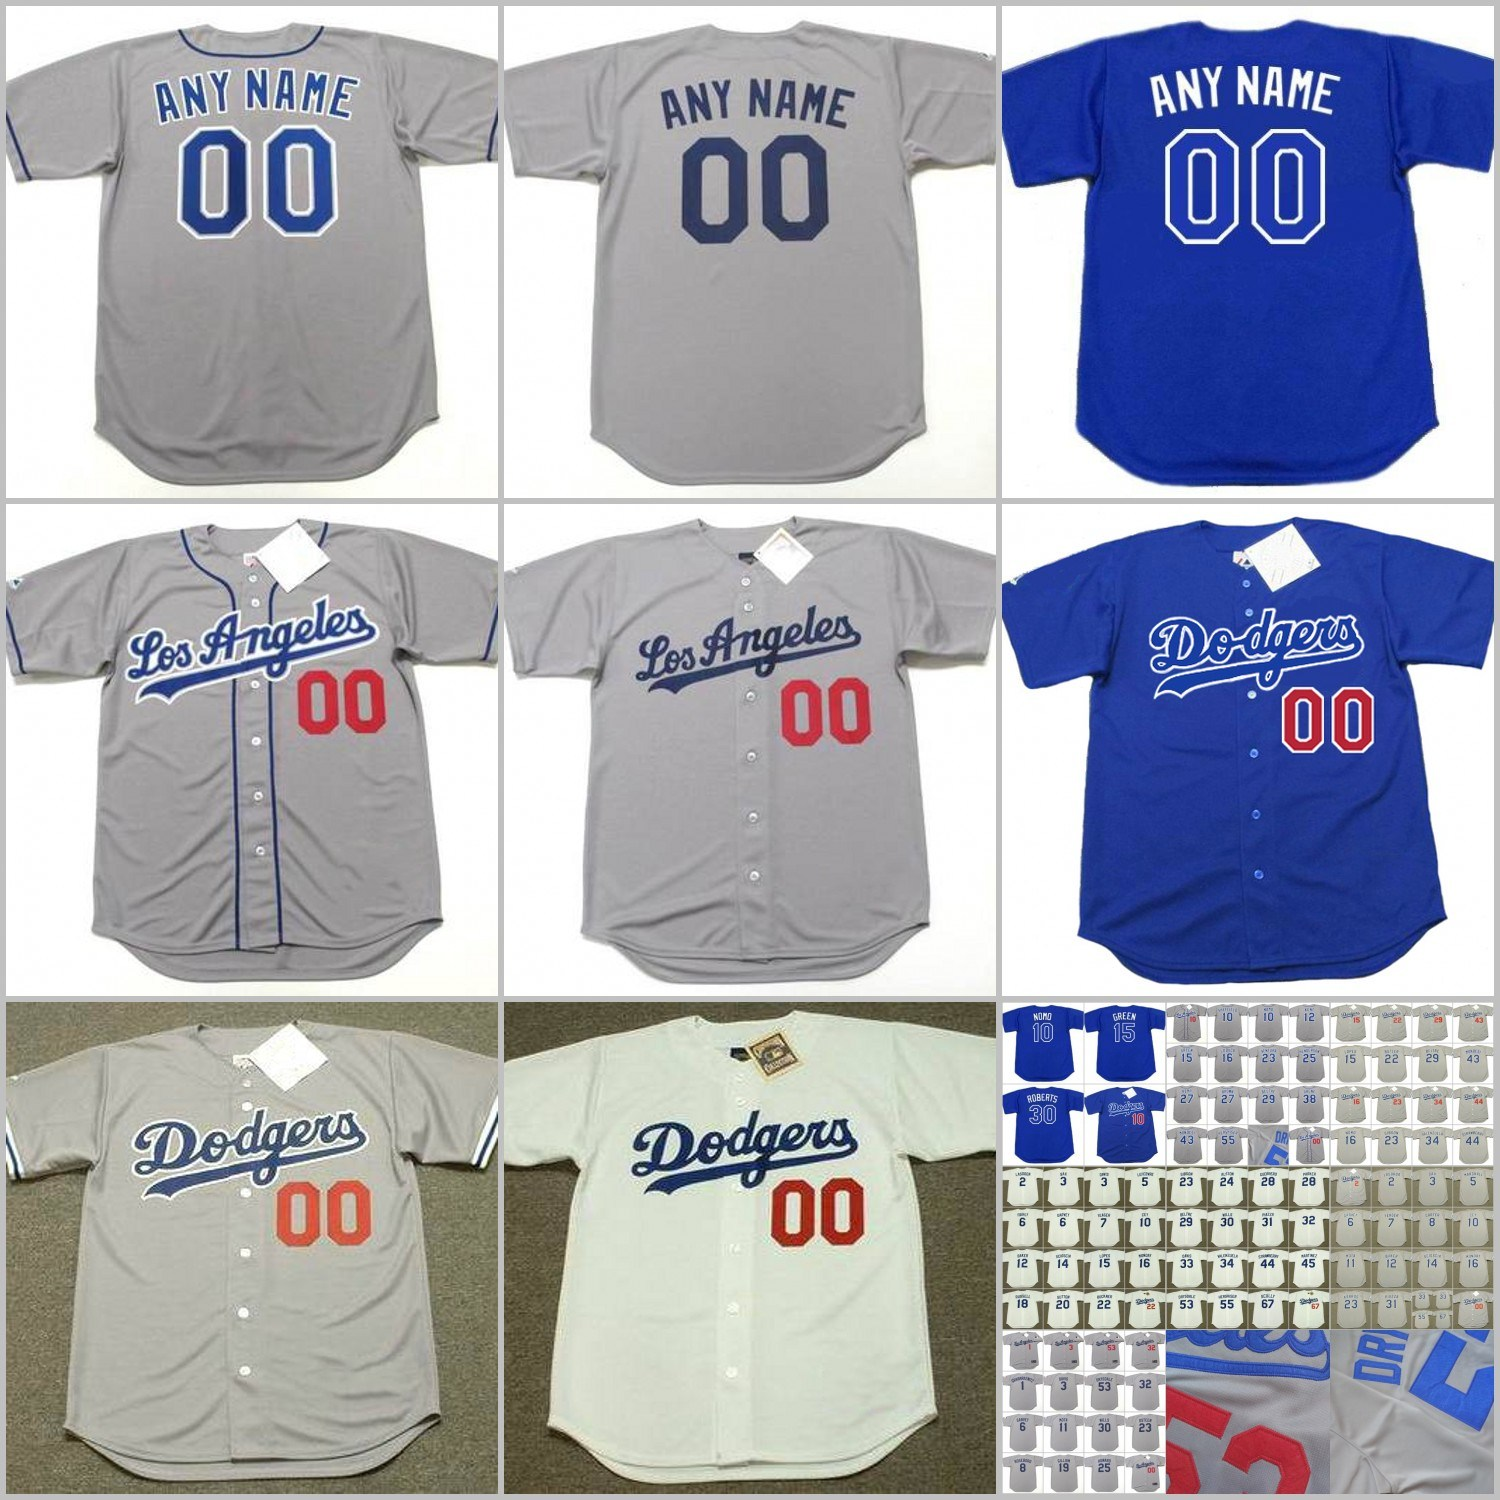 buy online c58f8 7f5cc [Hot Item] Tommy Lasorda Steve Garvey Ron Cey Dodgers Baseball Throwback  Jersey